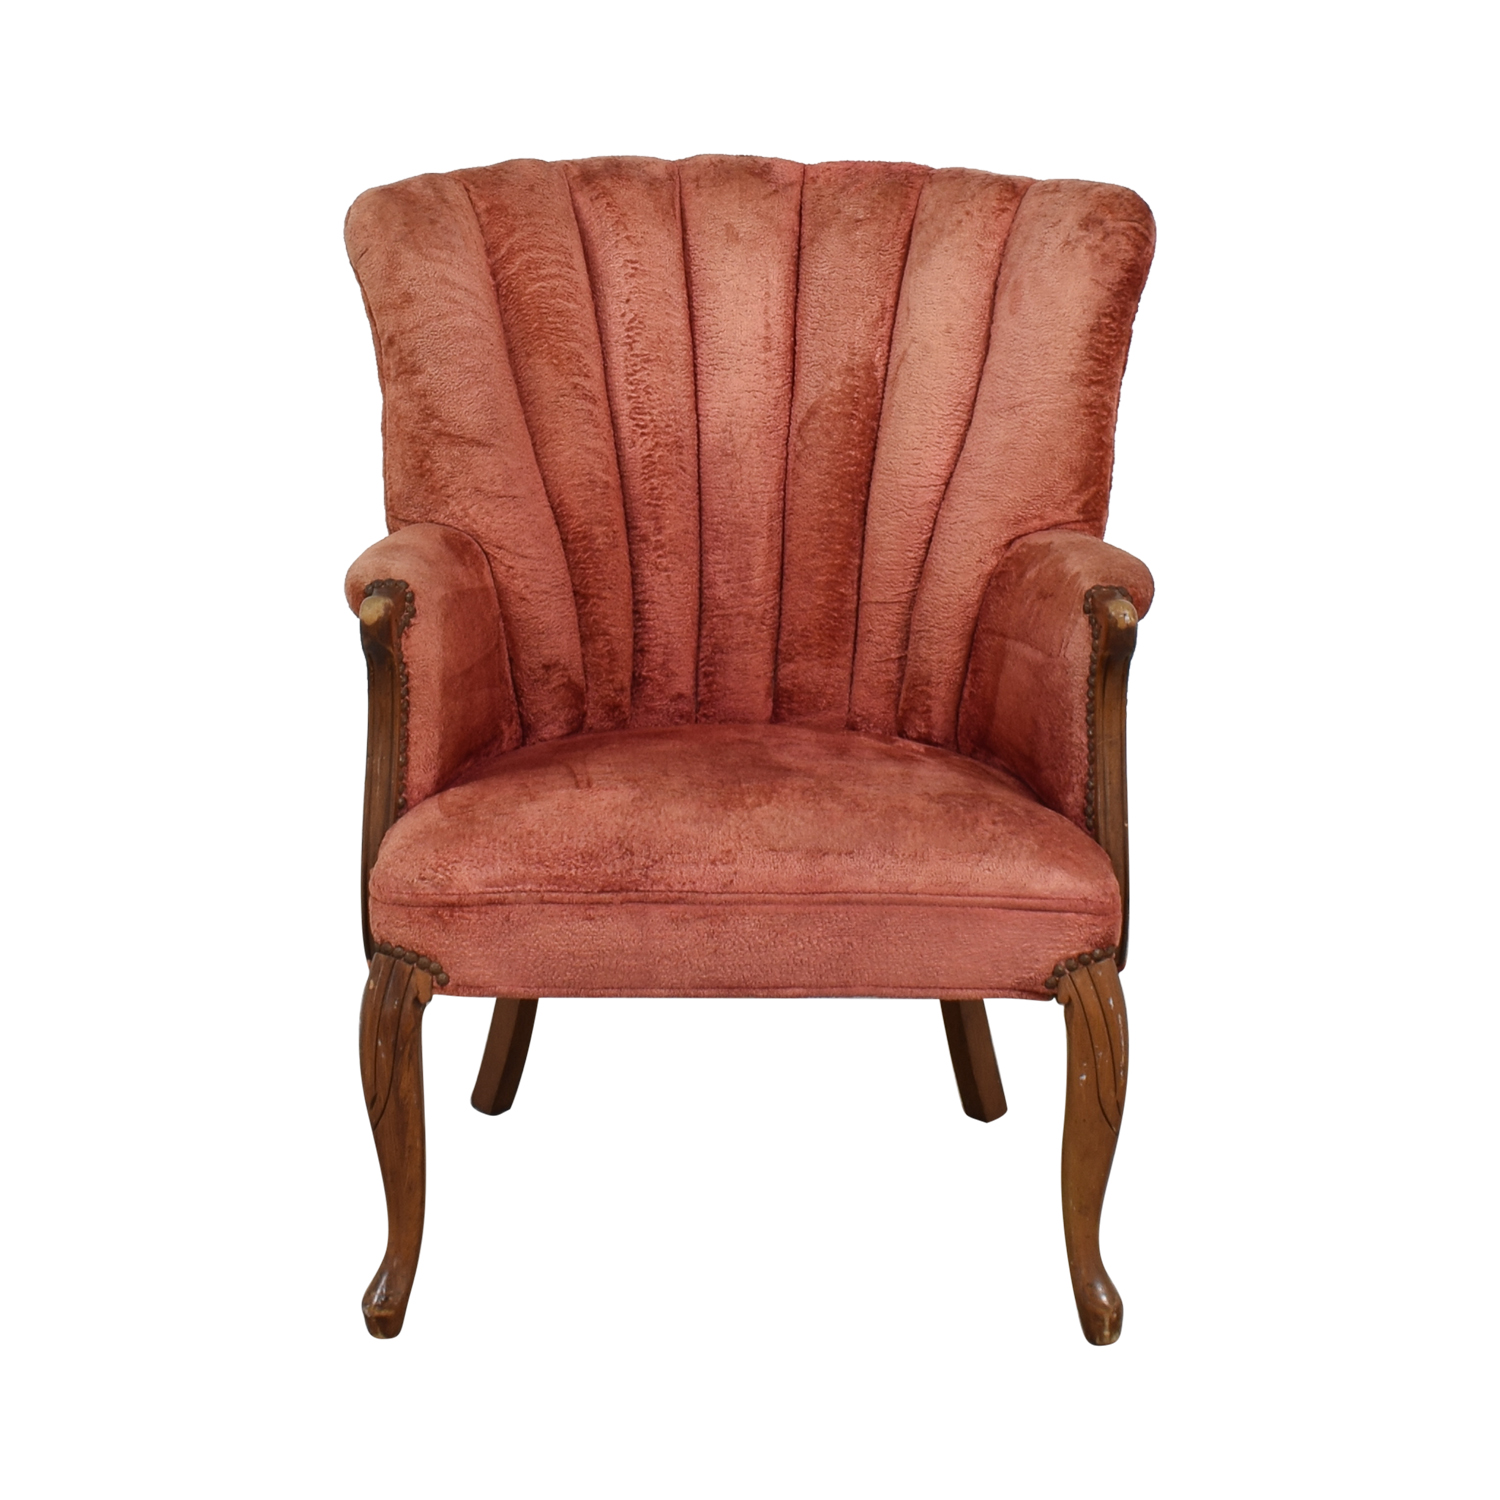 Vintage Wingback Armchair for sale